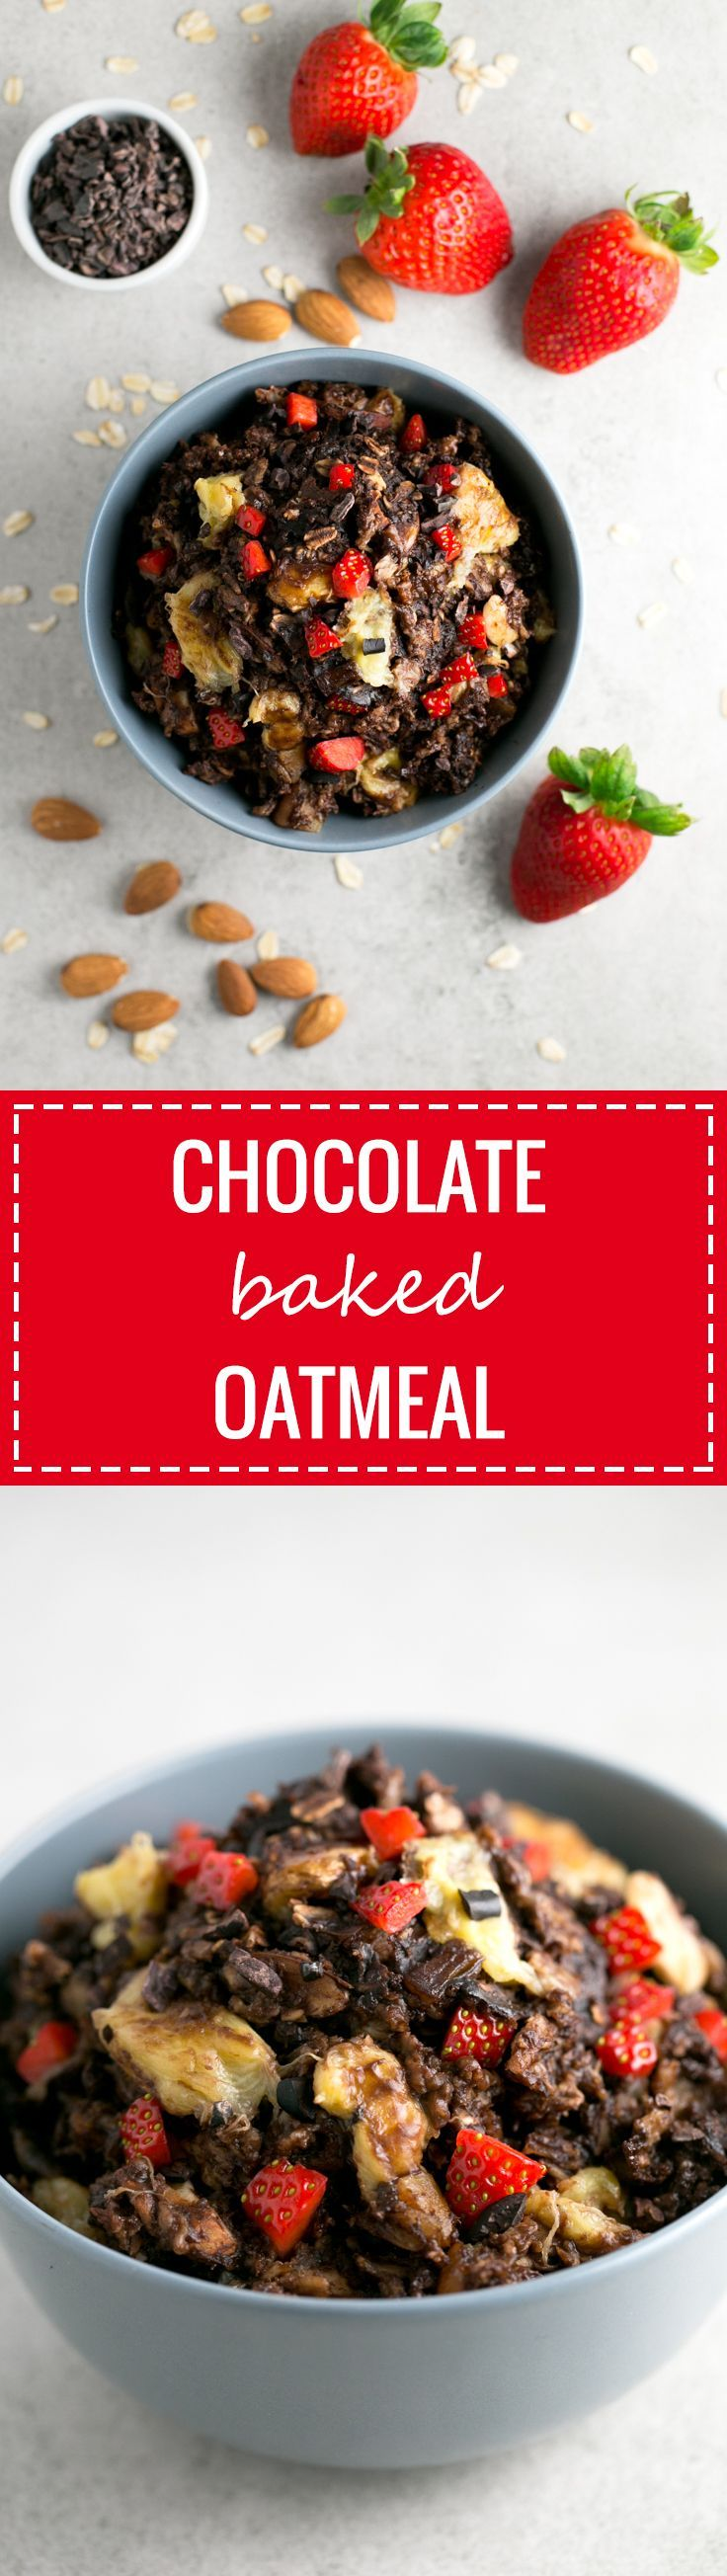 This chocolate bake oatmeal is the perfect healthy vegan breakfast recipe…